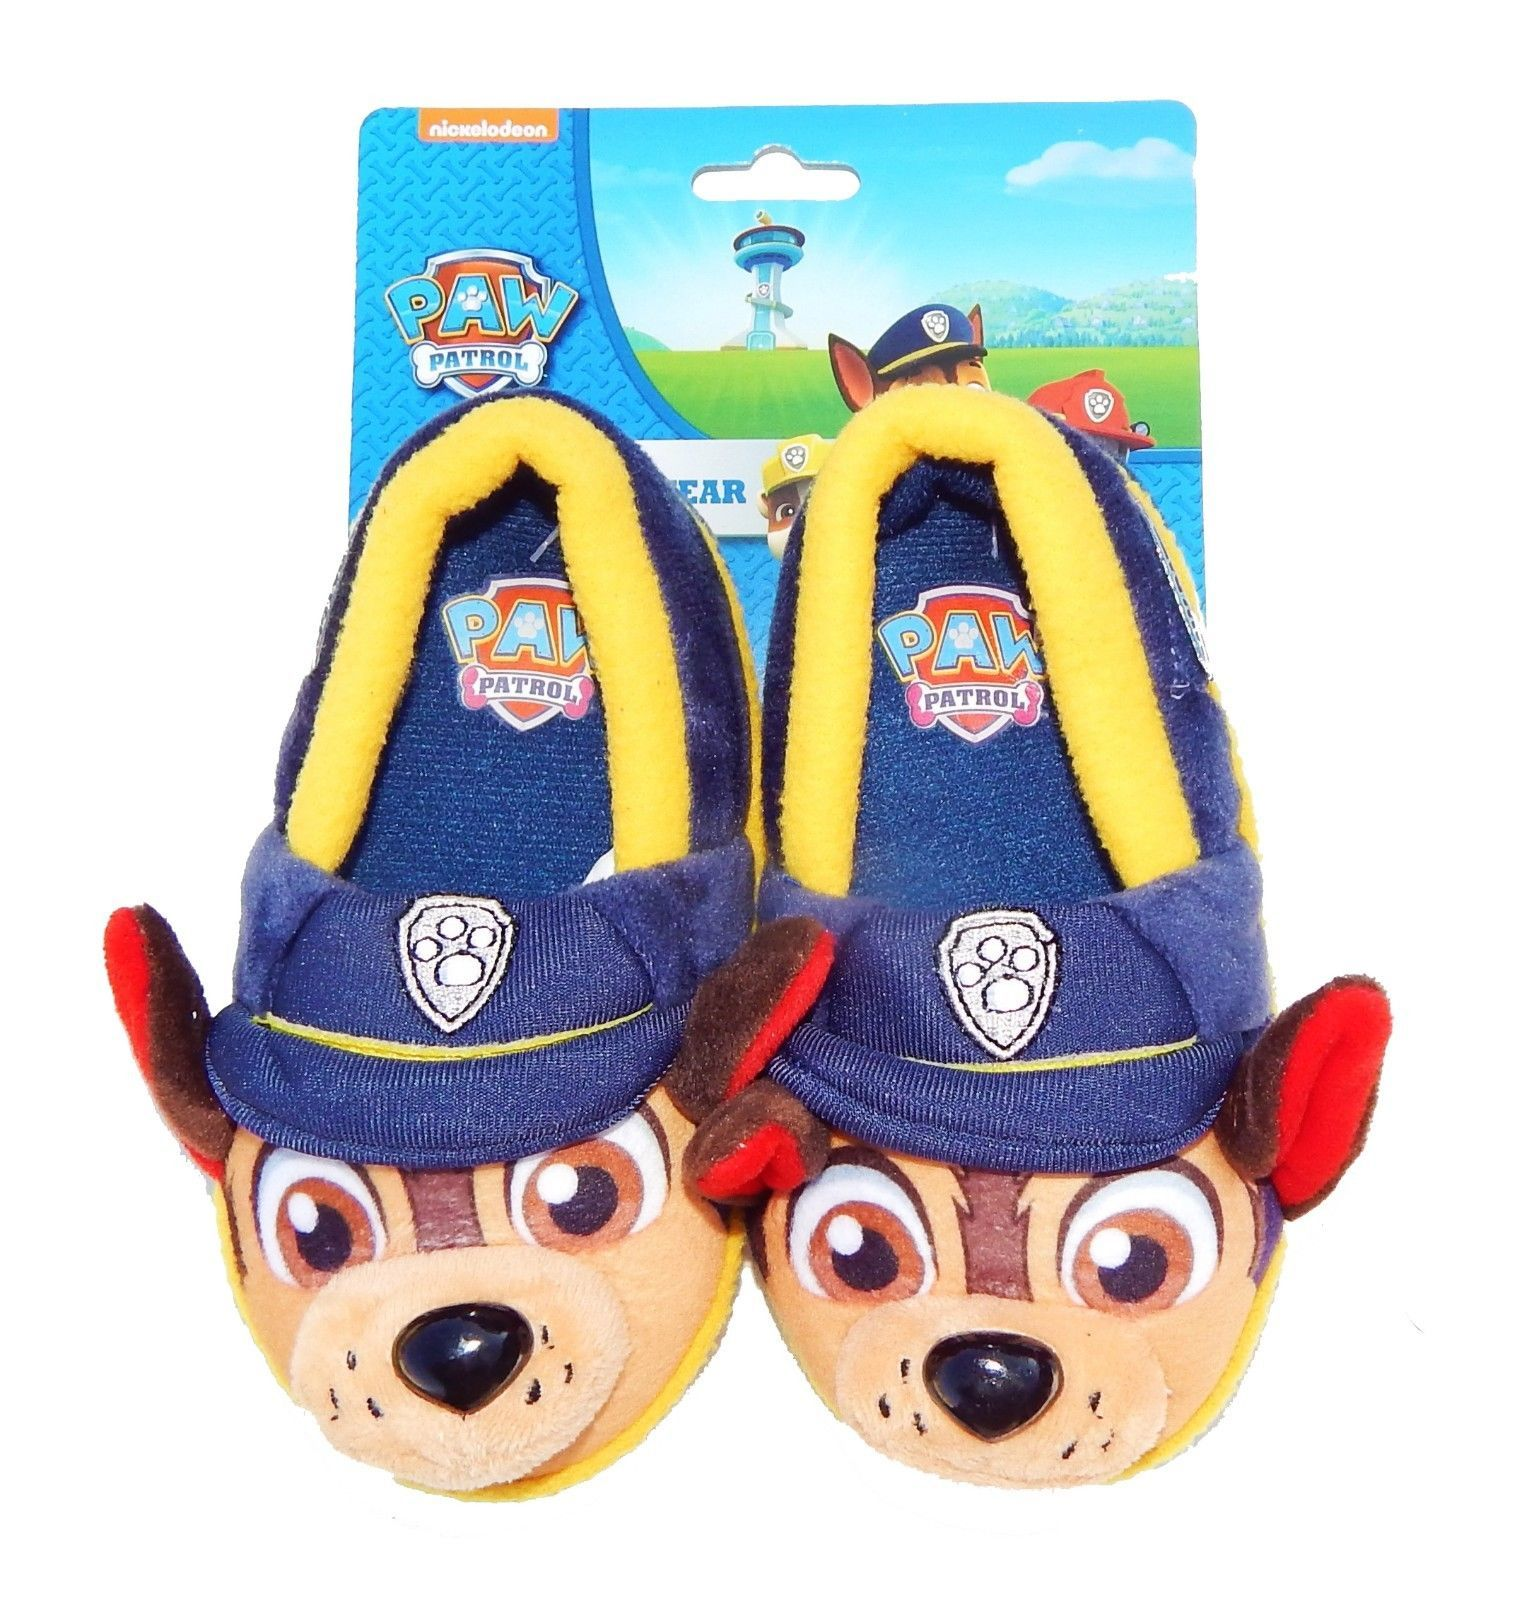 59b0d966fdd4 Paw Patrol Chase Police Pup Comfy Slippers and 50 similar items